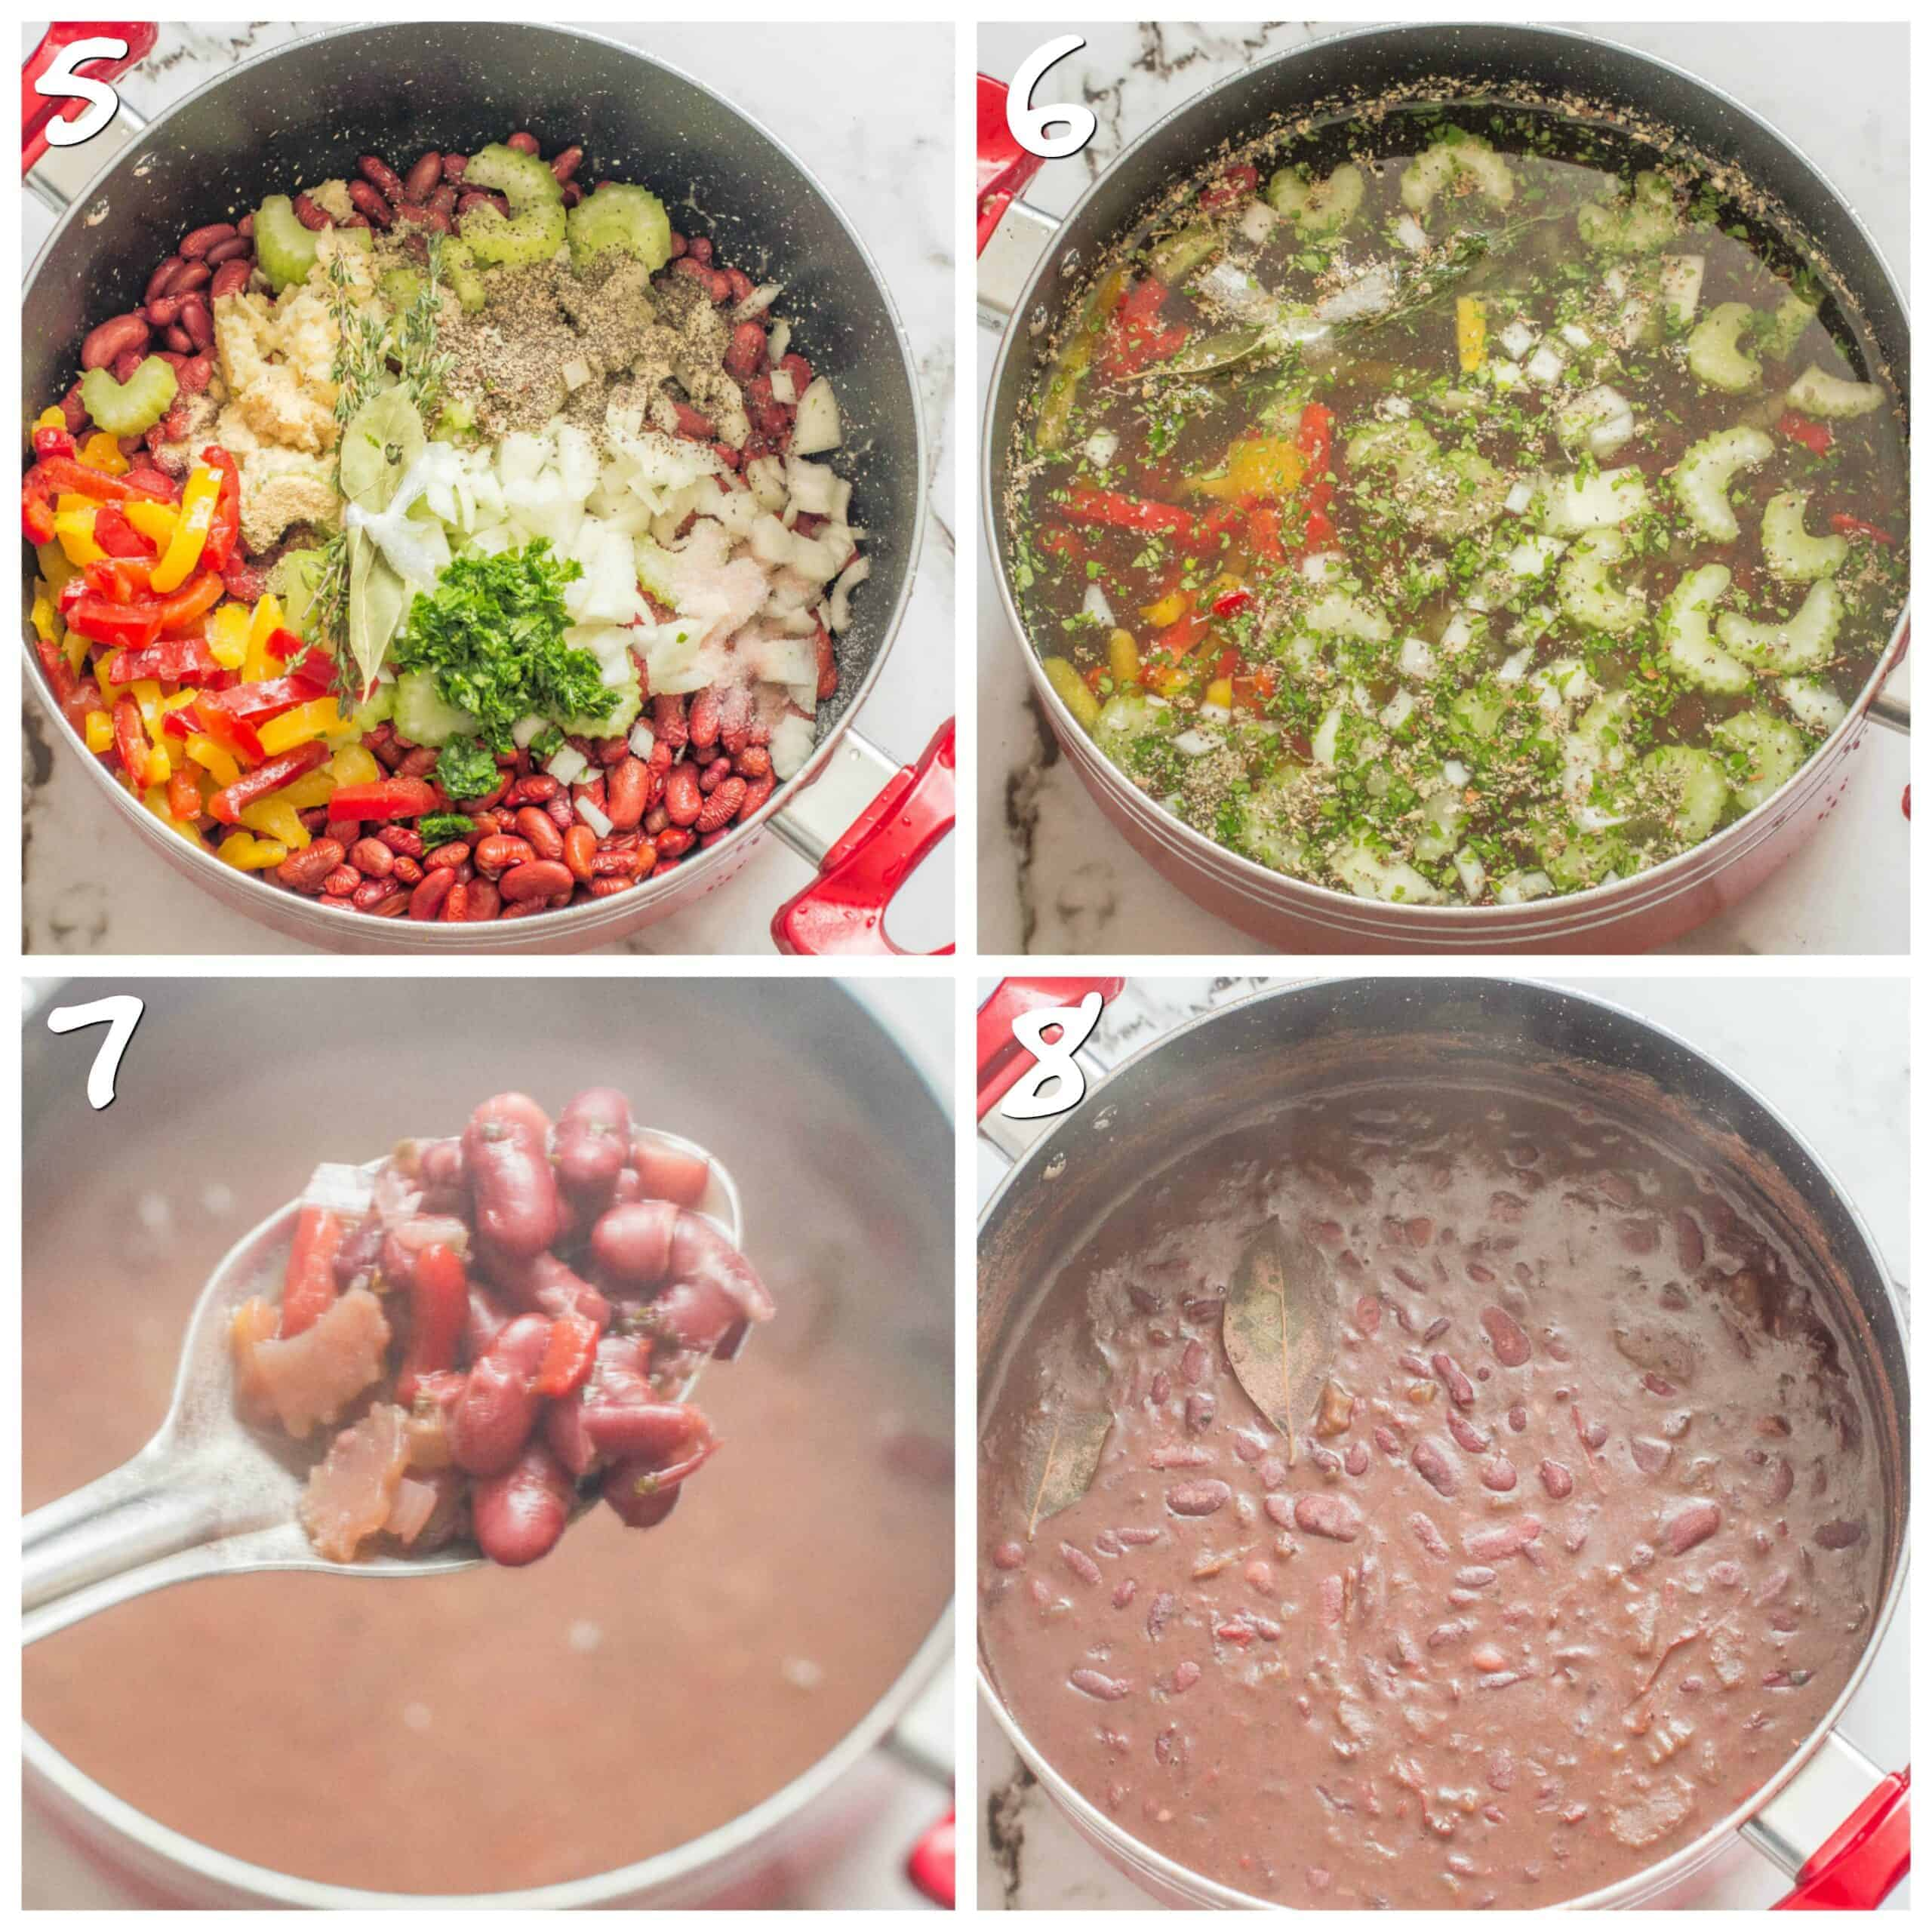 steps 5-8 cooking the beans to make stew